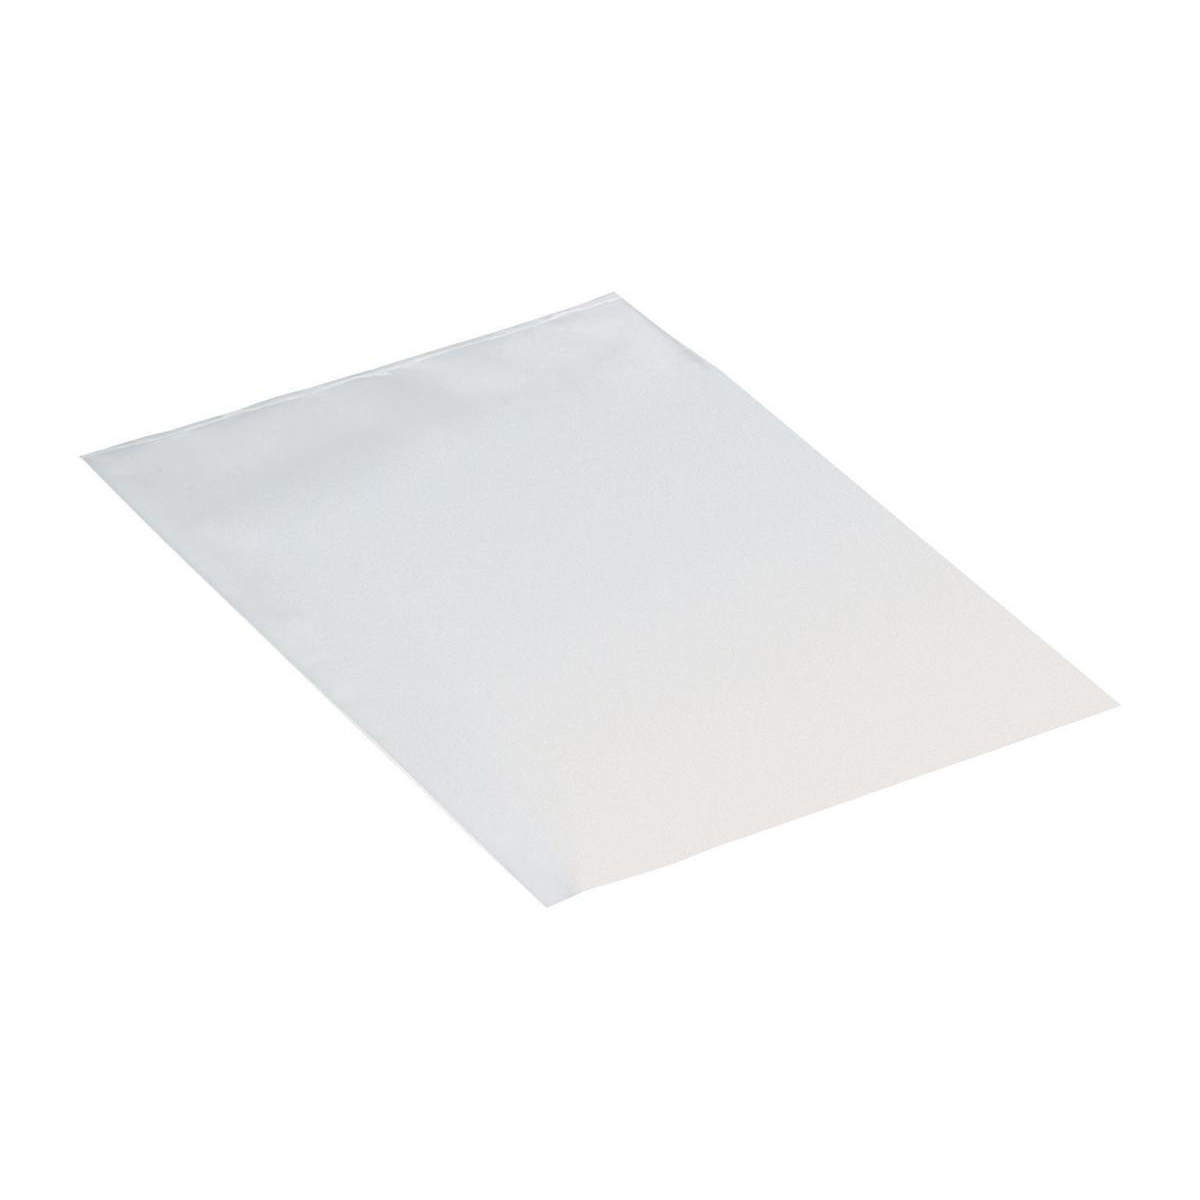 Image for Polybags Polythene Lightweight 120 Gauge 375x500mm Transparent [Pack 1000] (0)